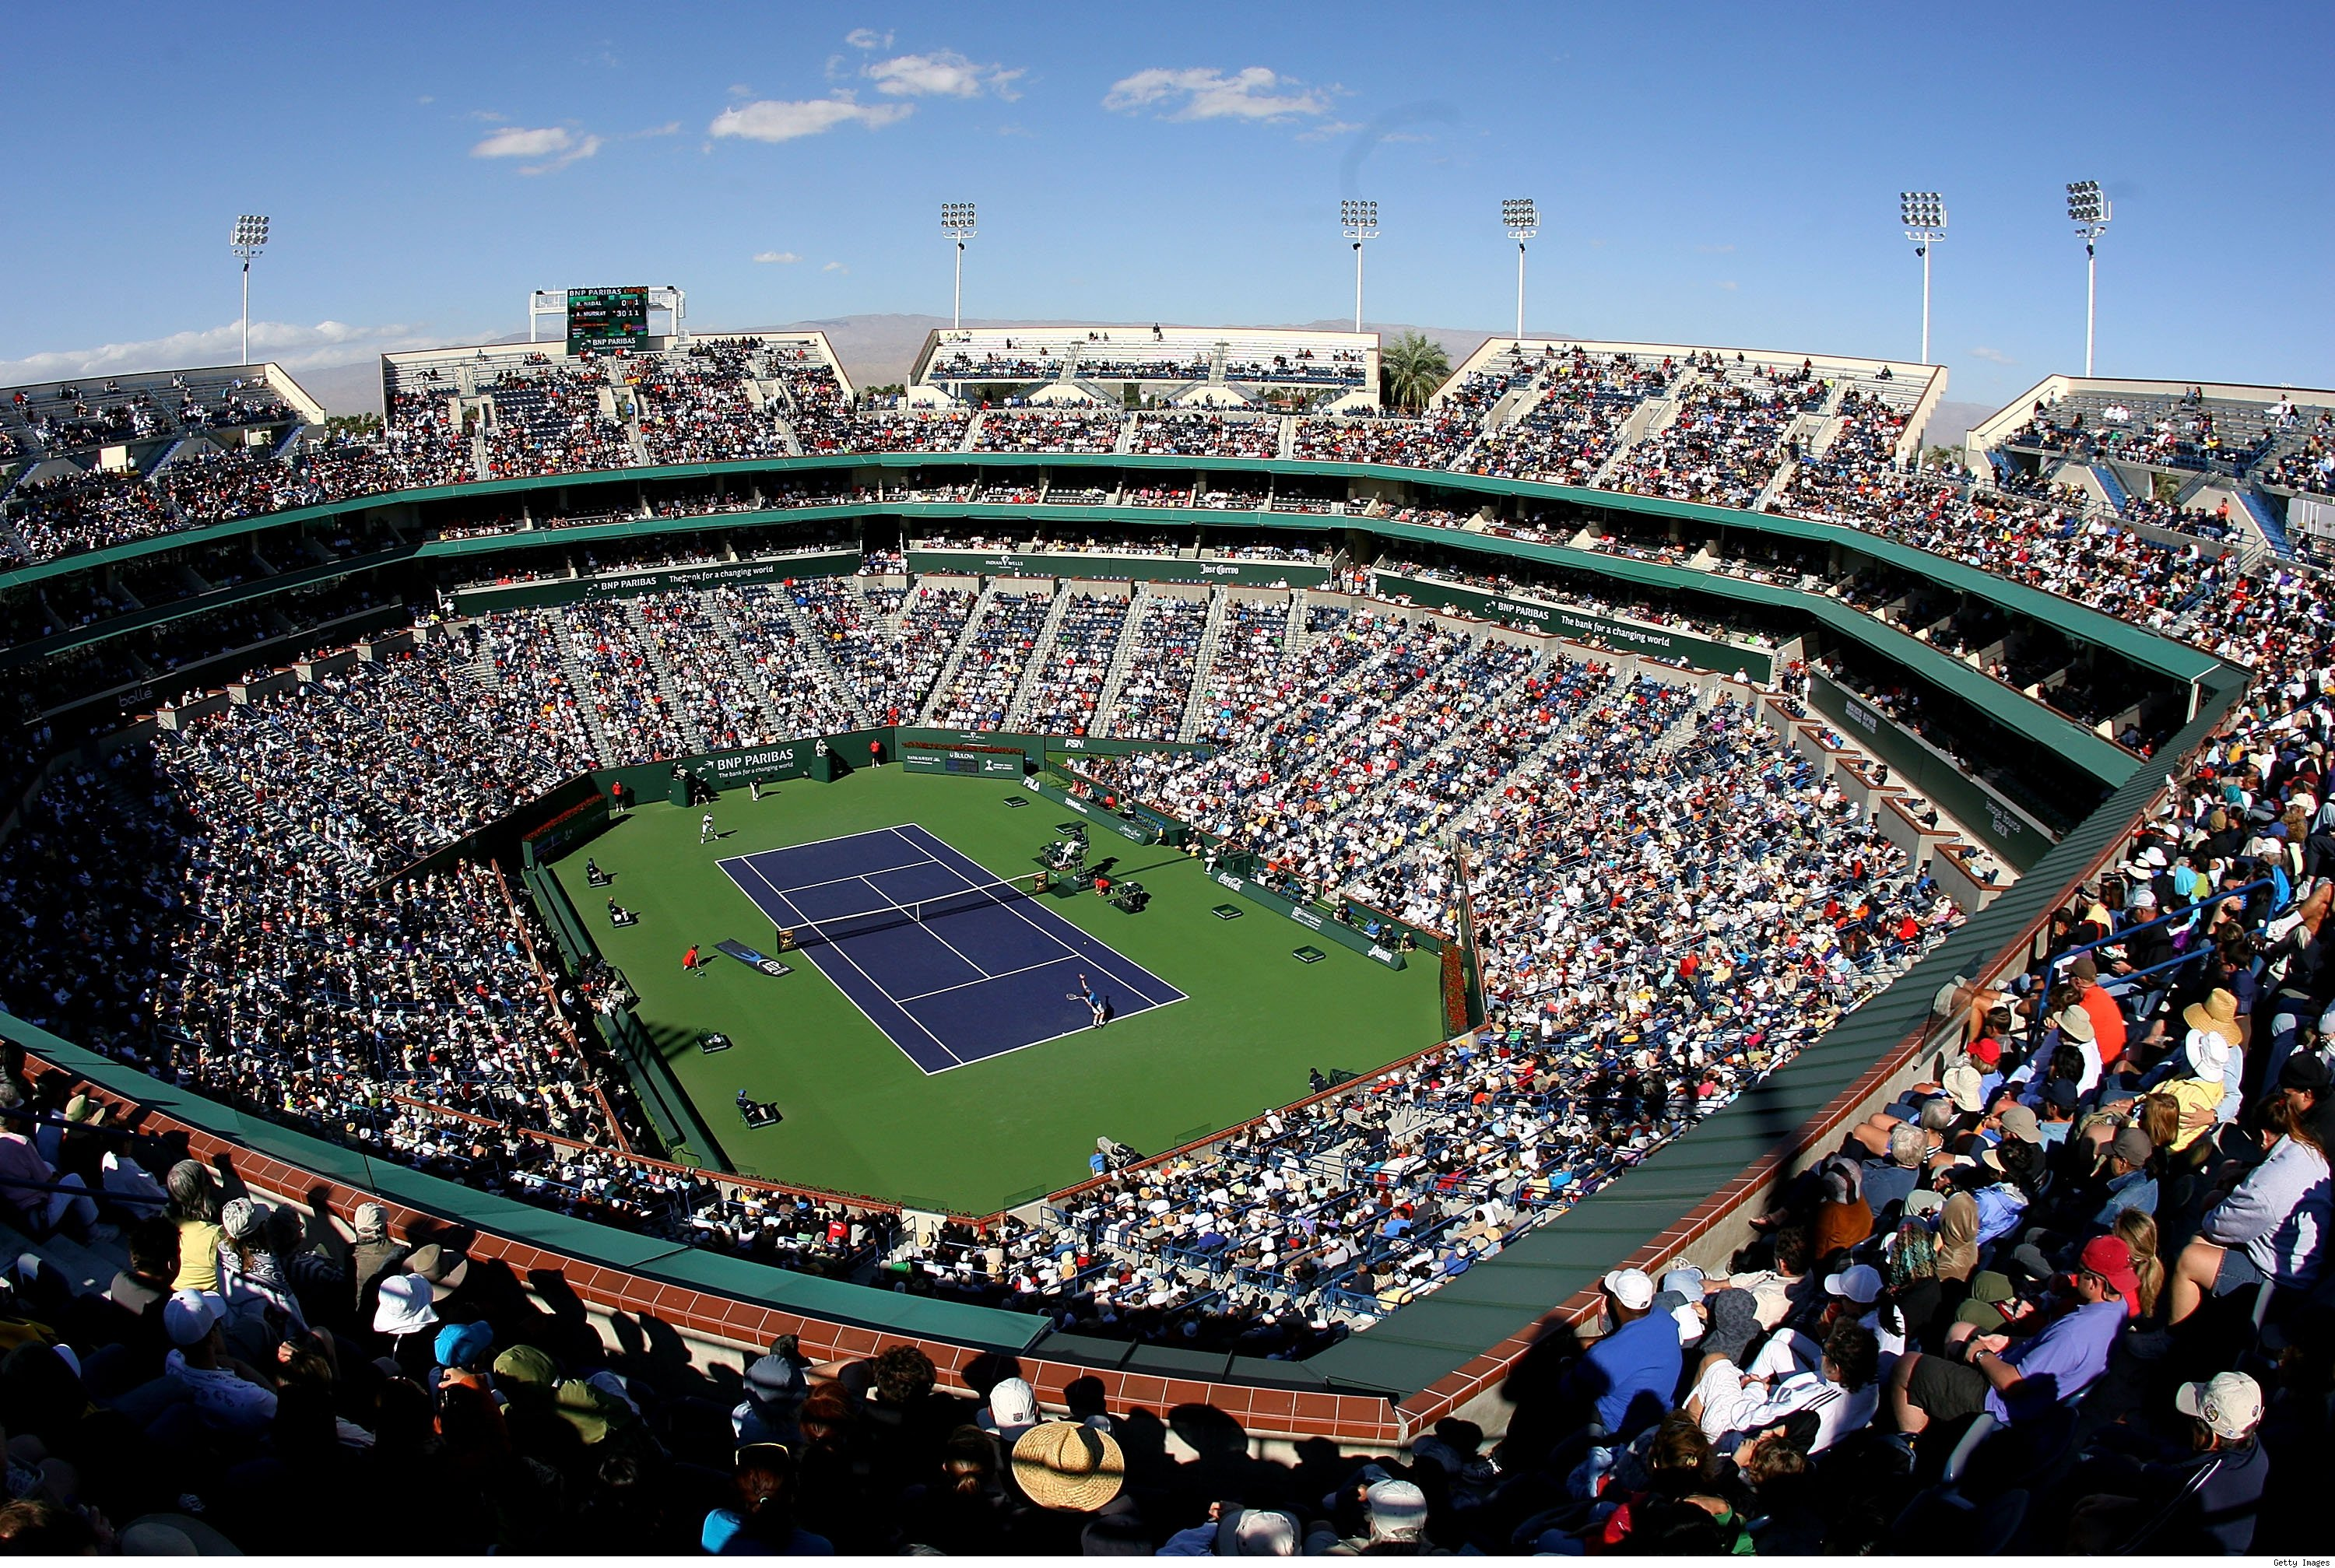 Indian Wells during the tournament (1 of 9)